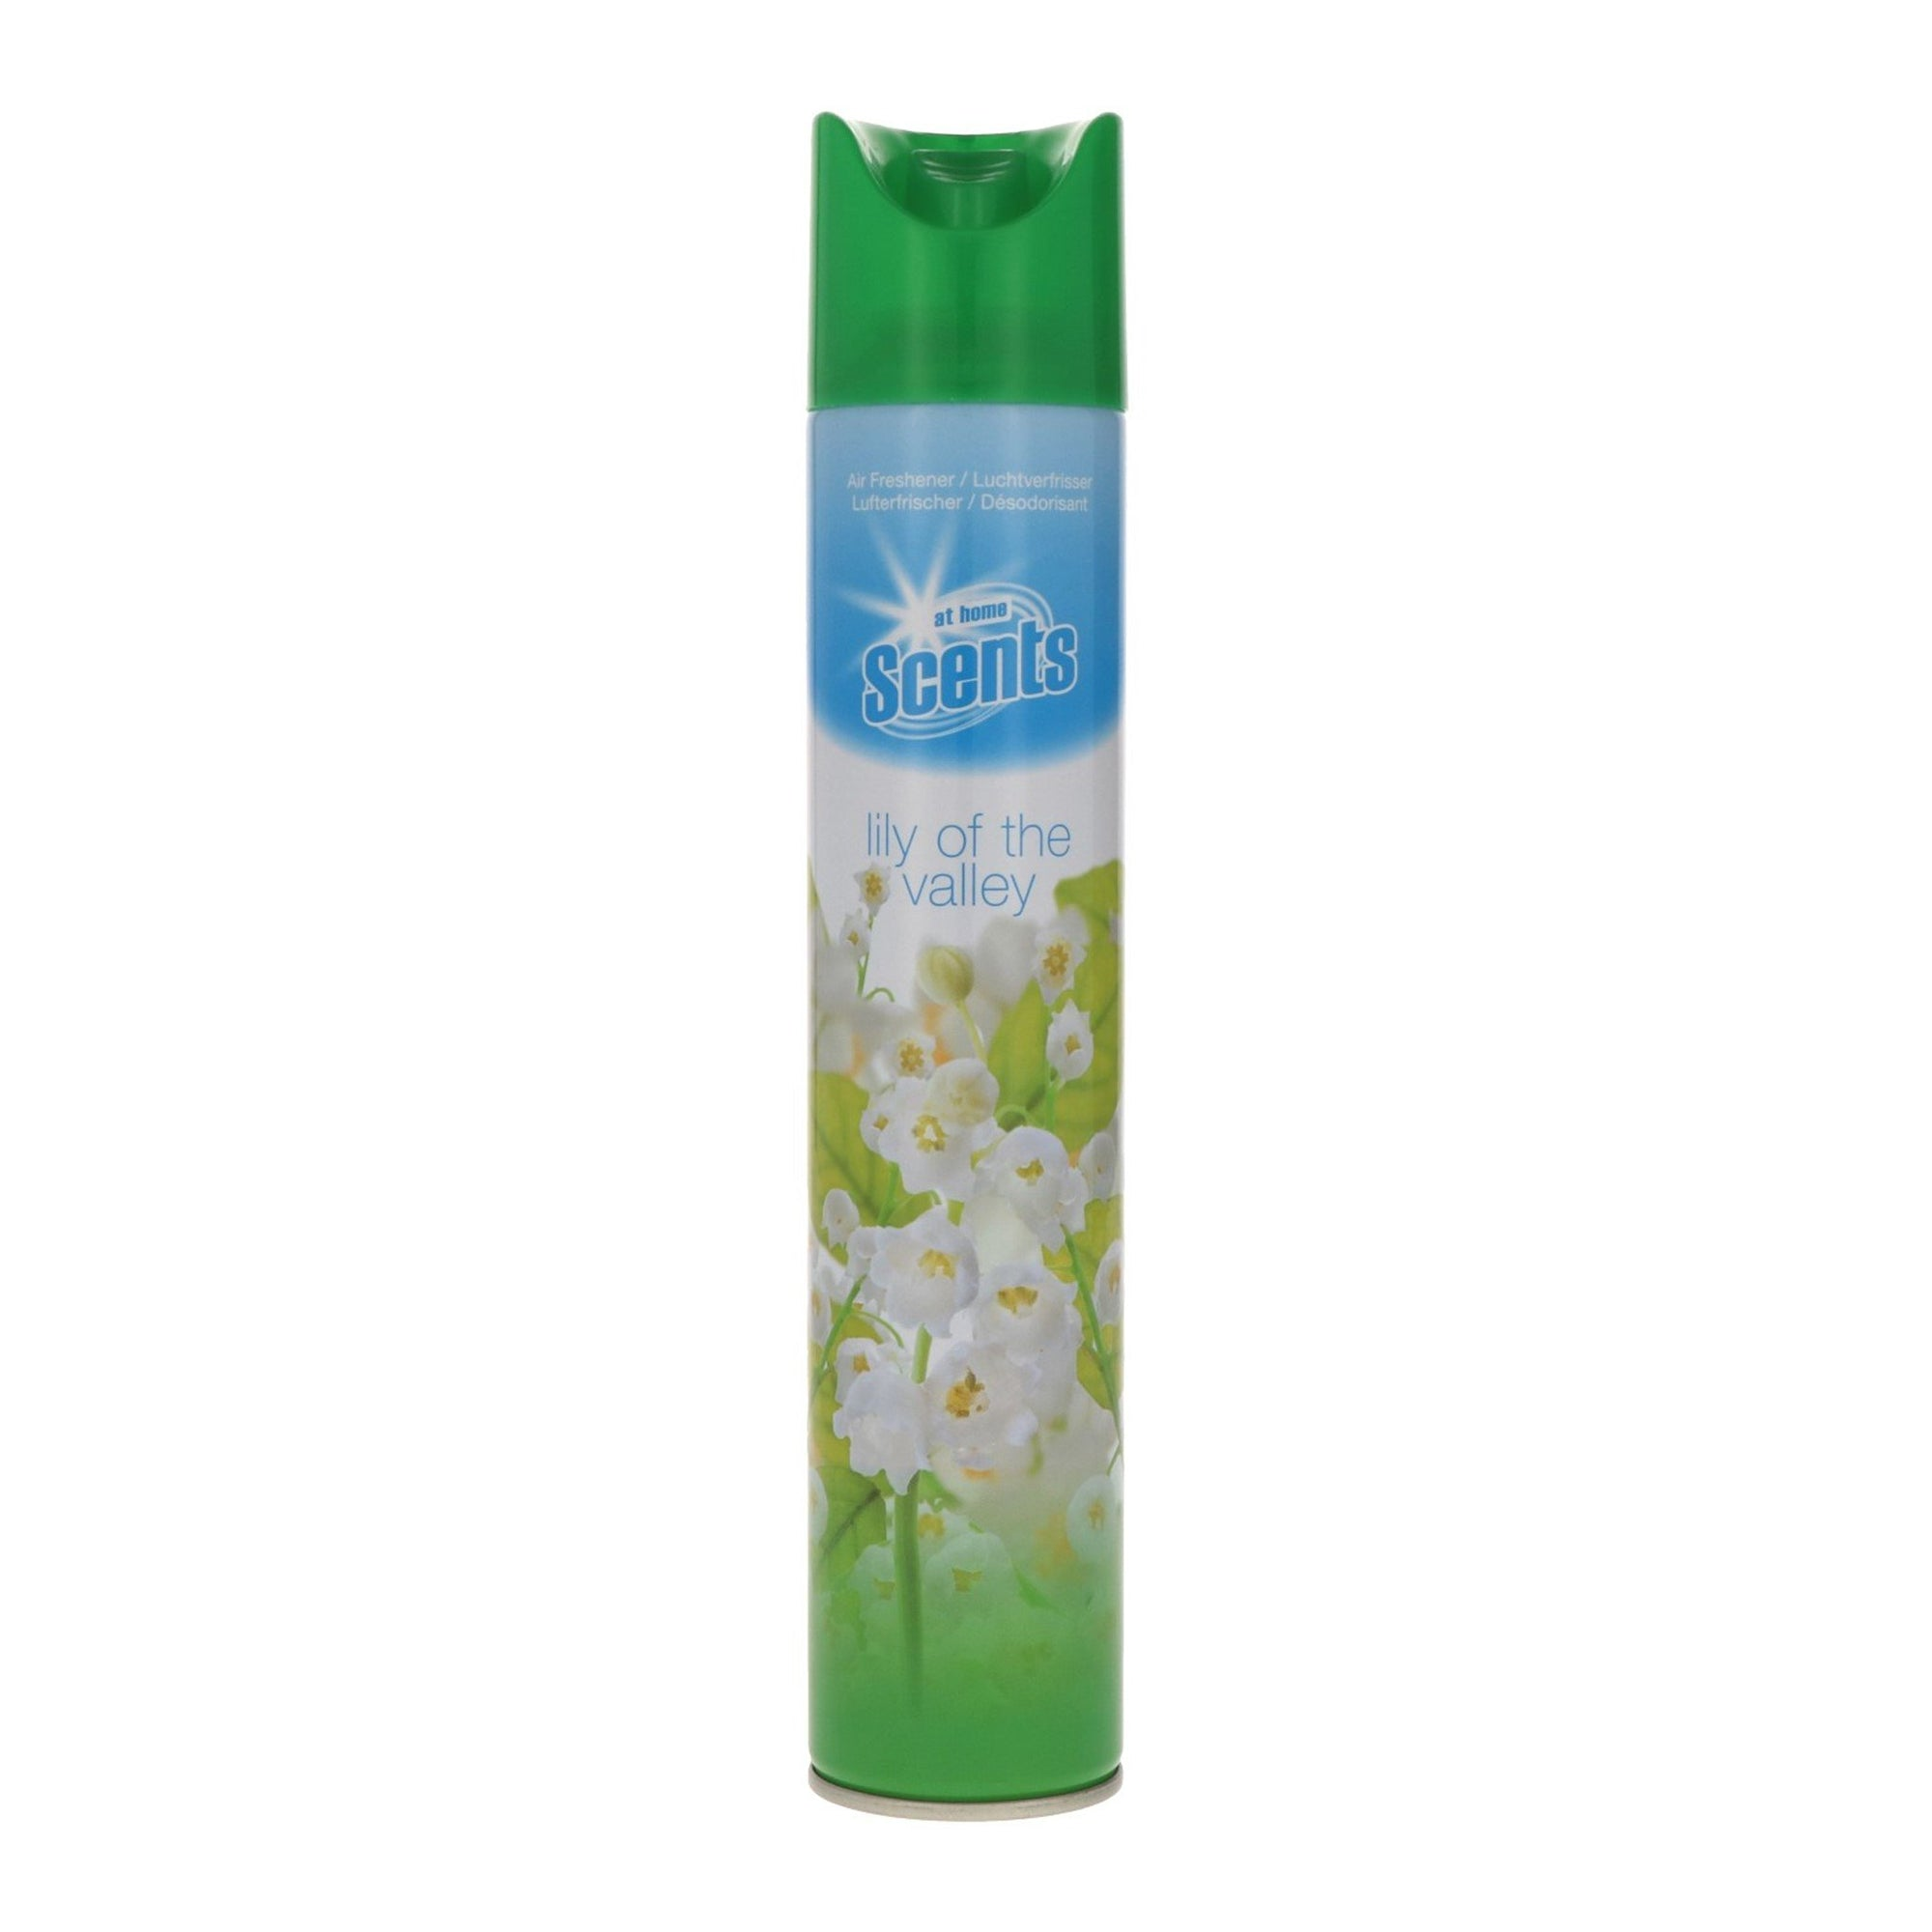 At Home Scents Air Freshener Lily of the Valley 400ml